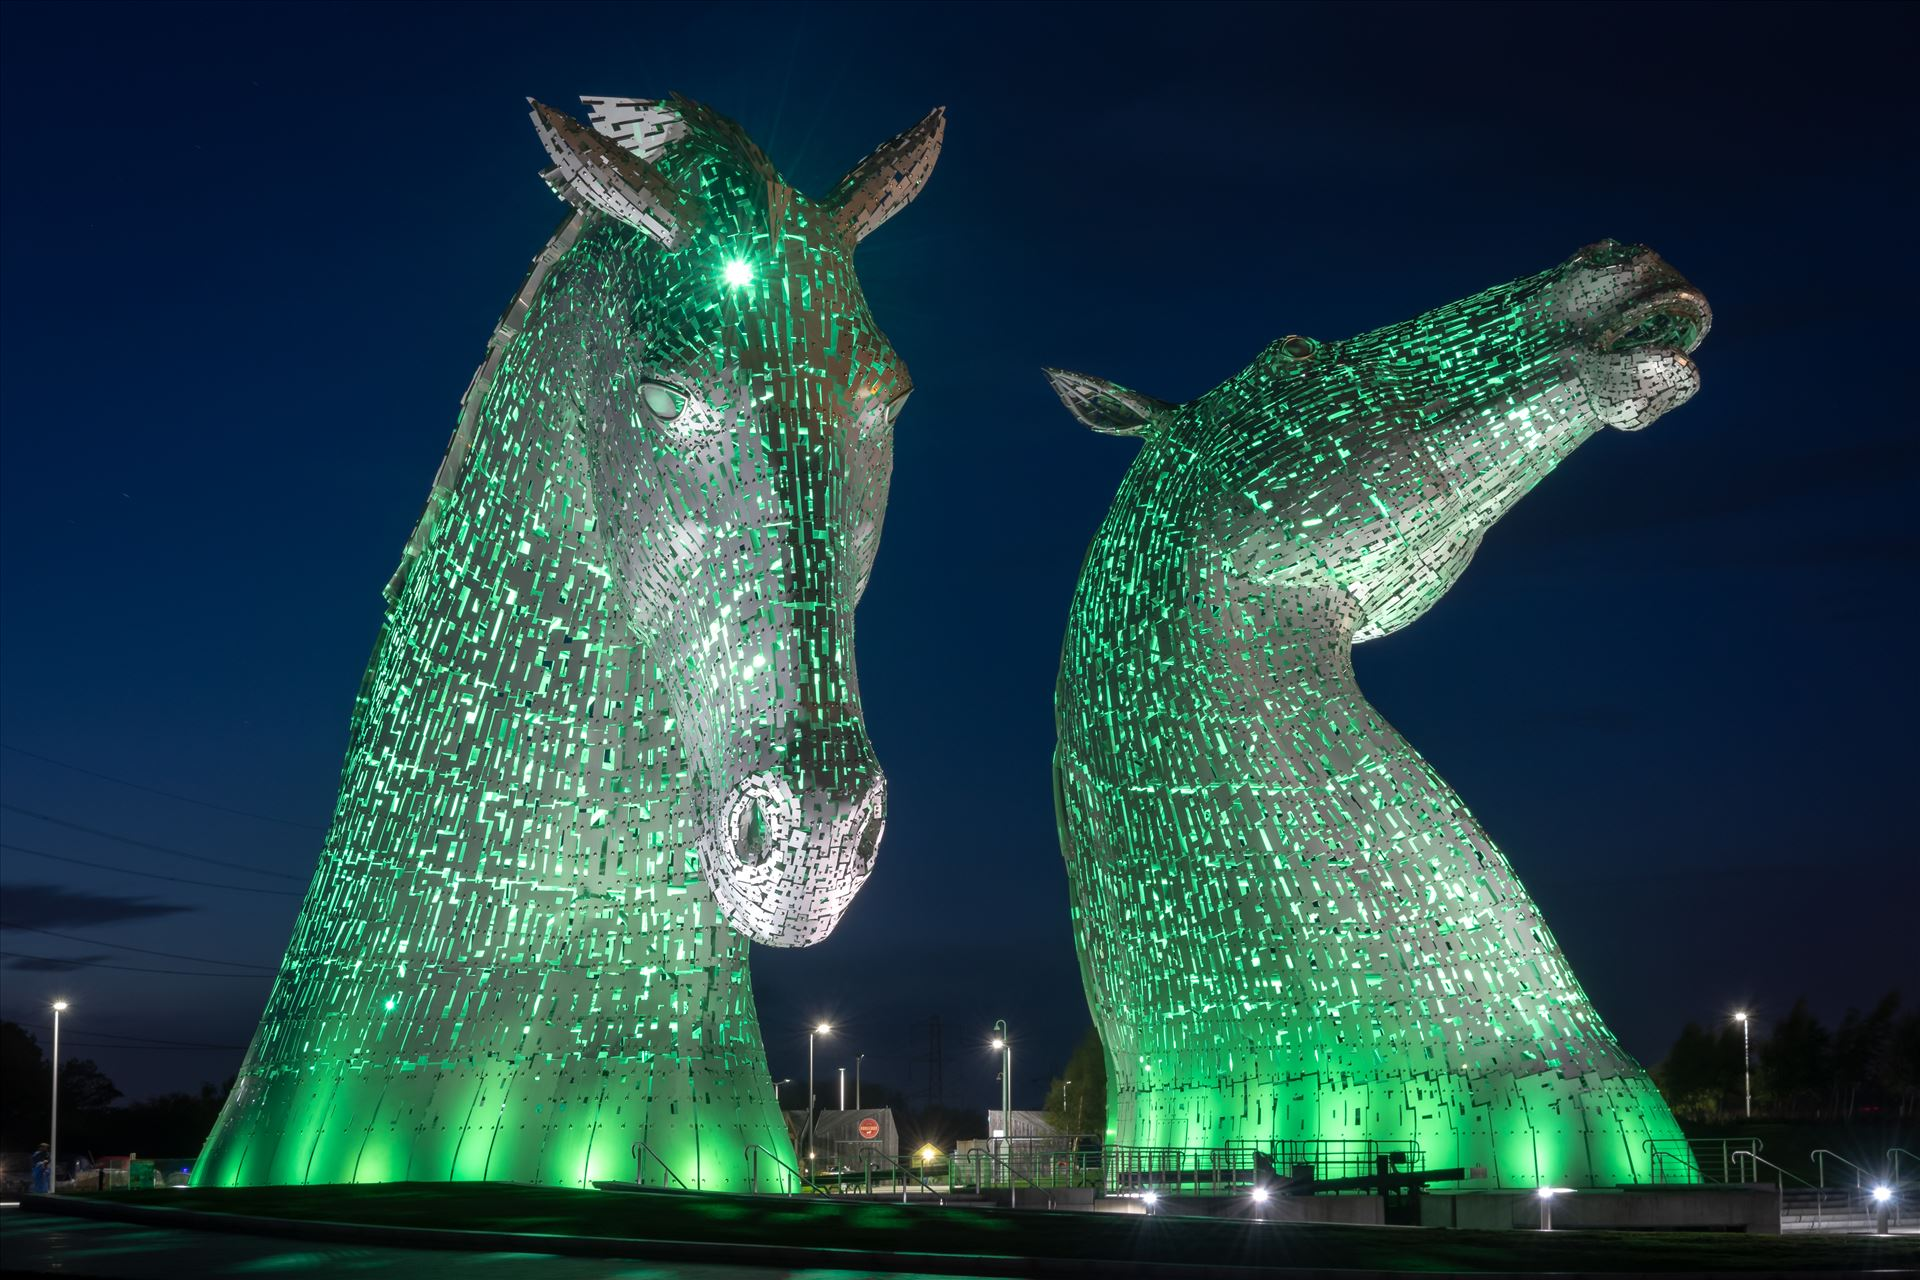 The Kelpies, Falkirk, Scotland - Green Built of structural steel with a stainless steel cladding, The Kelpies are 30 metres high and weigh 300 tonnes each. Construction began in June 2013 by Graham Dobson Photography